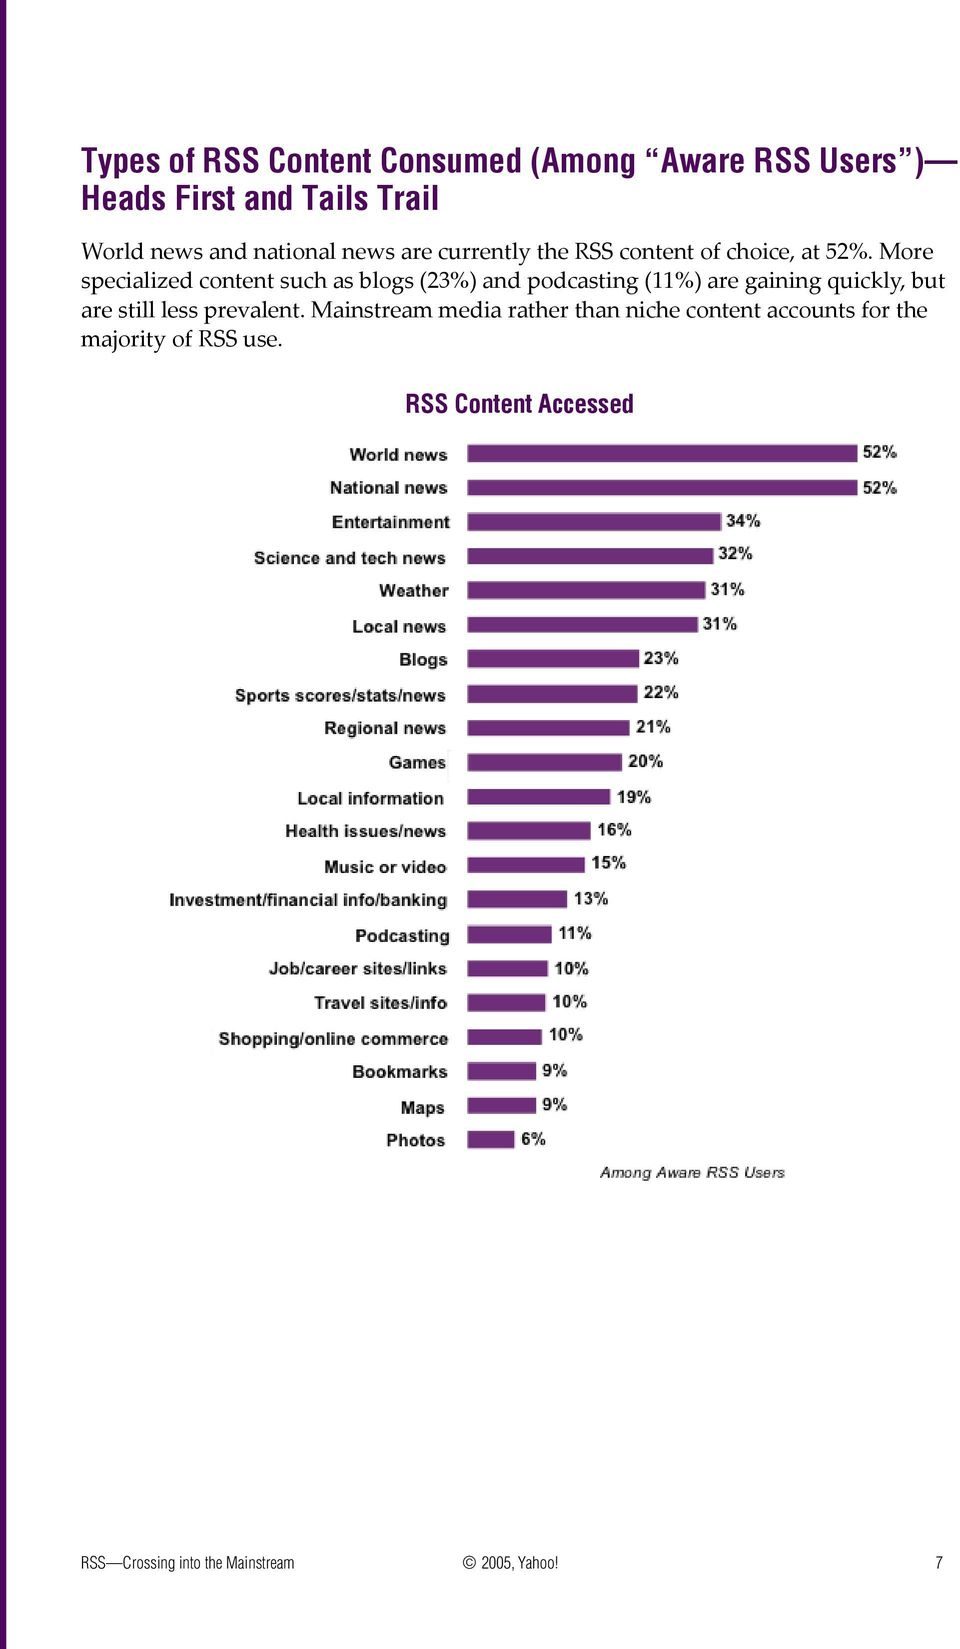 More specialized content such as blogs (23%) and podcasting (11%) are gaining quickly, but are still less